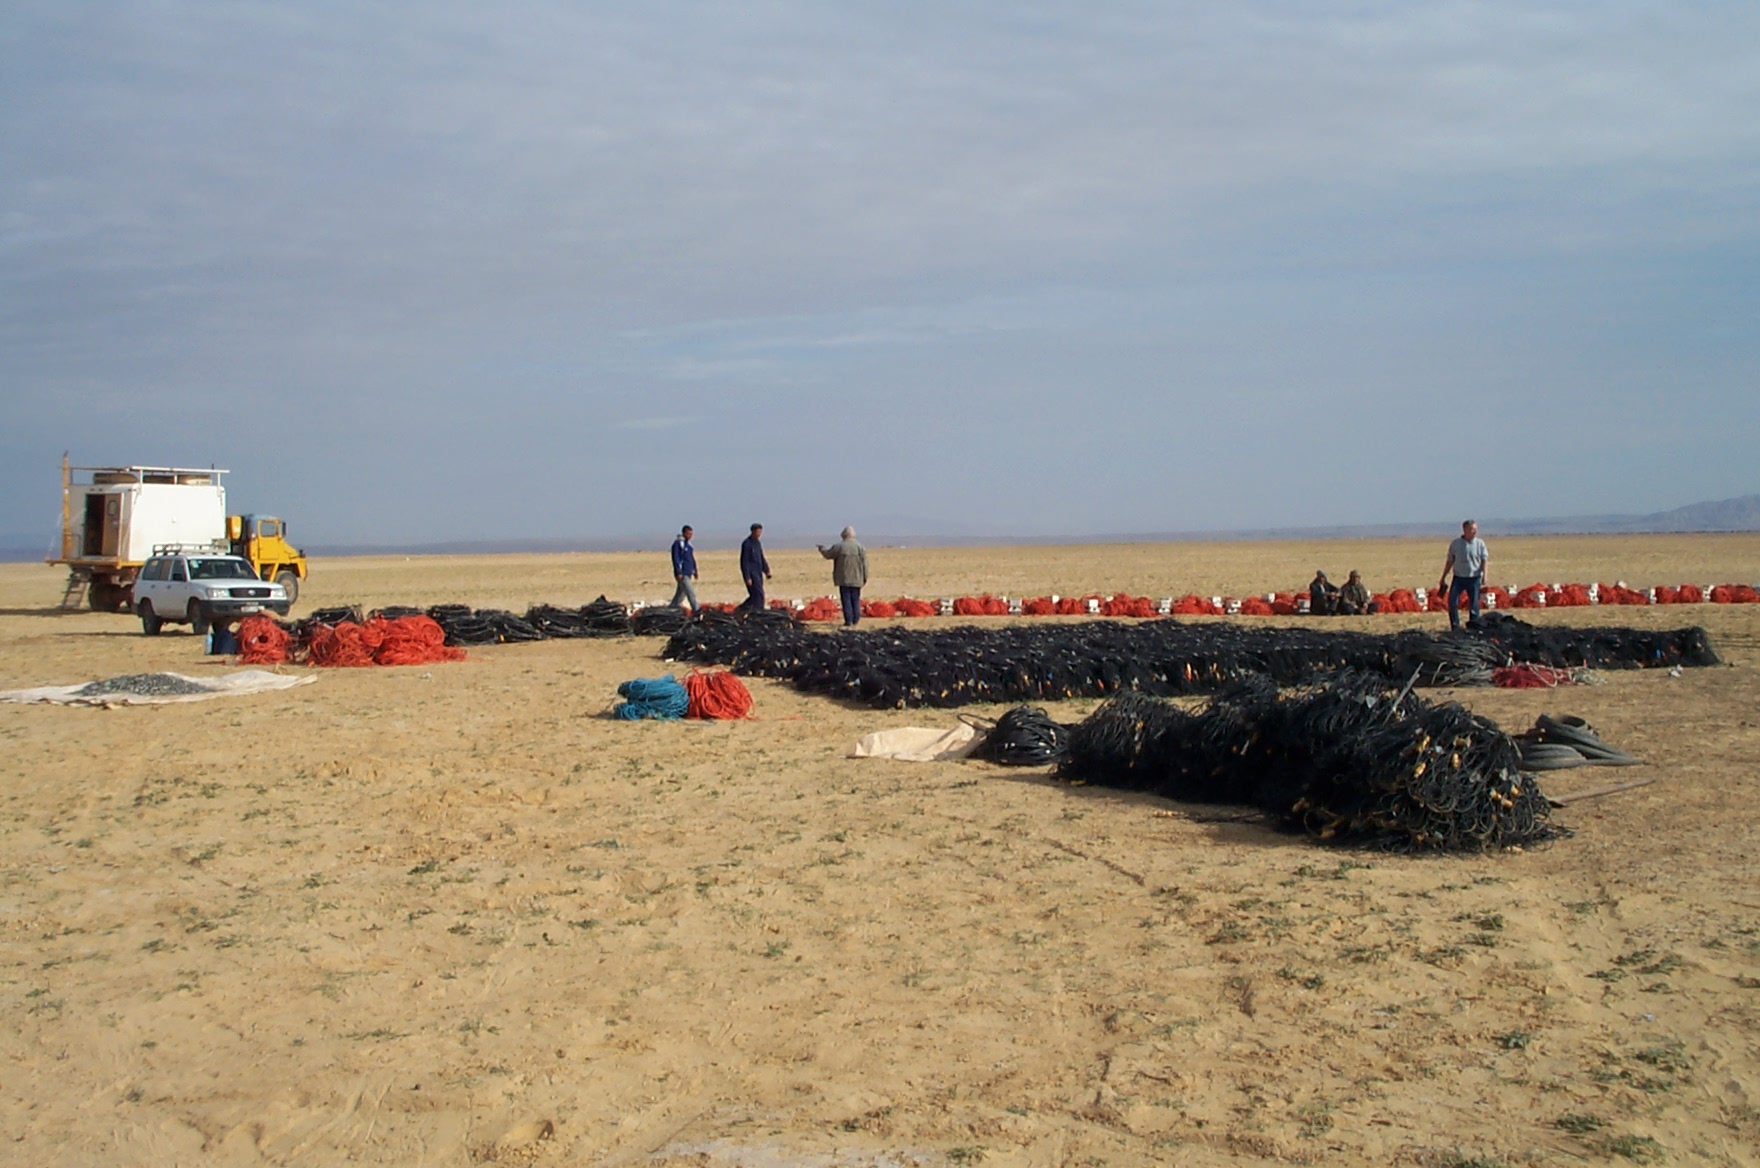 Quality checking cables and geophones for seismic crew start up, Algeria.